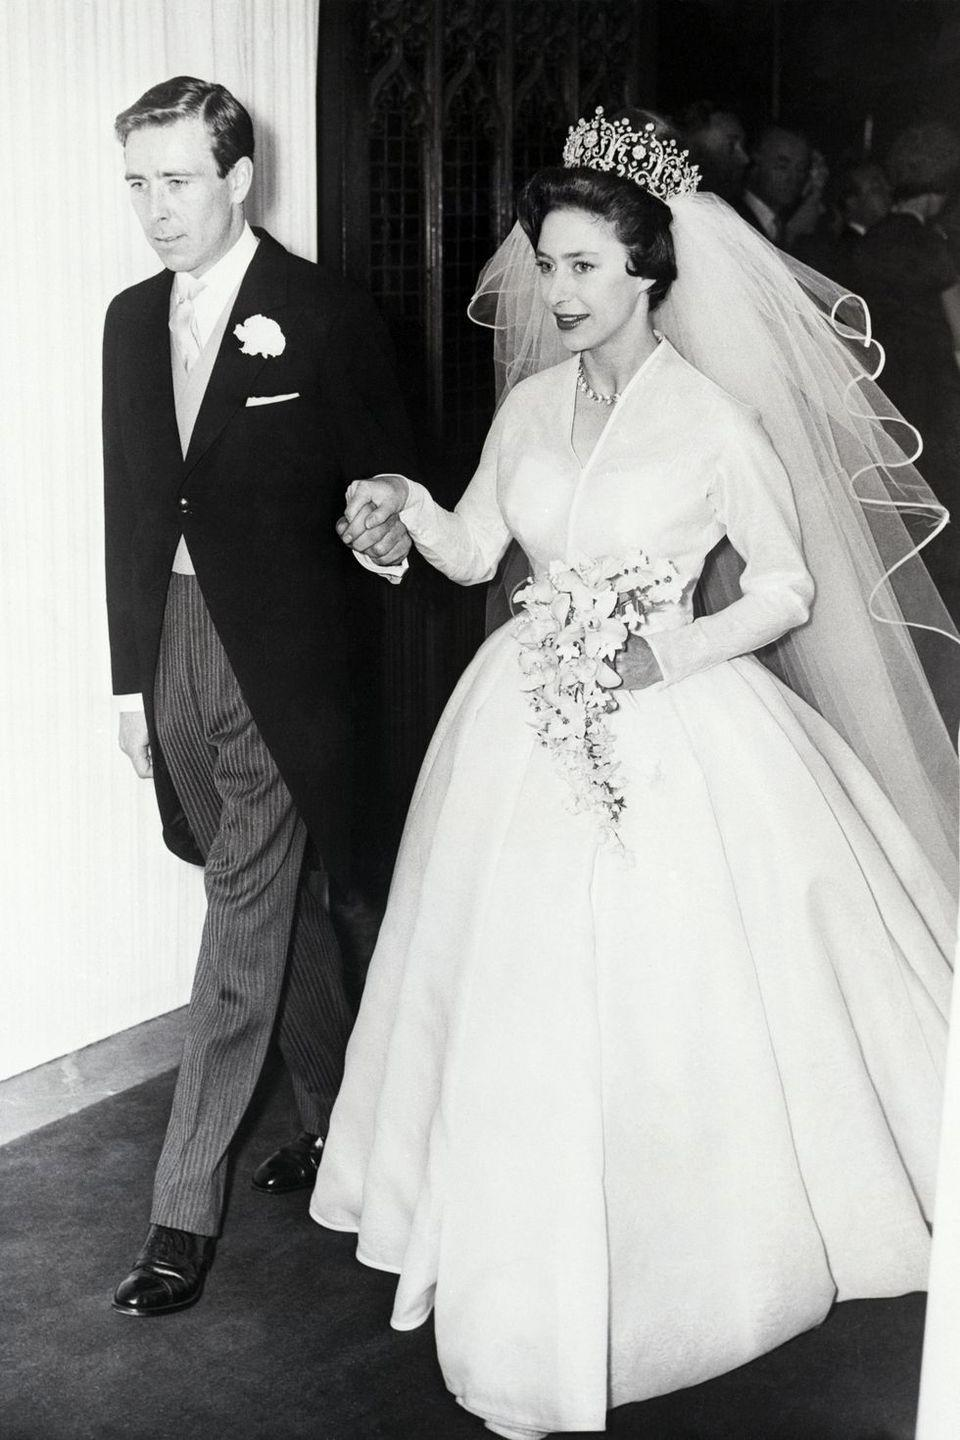 "<p><strong>Wedding date: </strong>May 6, 1960</p><p><strong>Wedding tiara: </strong><a href=""https://www.townandcountrymag.com/society/tradition/a12265404/princess-margaret-wedding-to-lord-snowdon/"" rel=""nofollow noopener"" target=""_blank"" data-ylk=""slk:Margaret wore the Poltimore Tiara"" class=""link rapid-noclick-resp"">Margaret wore the Poltimore Tiara</a> on her wedding day, which was purchased as Margaret's engagement to Antony Armstrong-Jones was announced. Garrard created the tiara in the 1870s for Lady Florence Poltimore. Sadly, the gorgeous piece was sold after Margaret's death <a href=""https://www.christies.com/special_sites/woodwork/specialist.asp"" rel=""nofollow noopener"" target=""_blank"" data-ylk=""slk:at auction in 2006."" class=""link rapid-noclick-resp"">at auction in 2006.</a></p>"